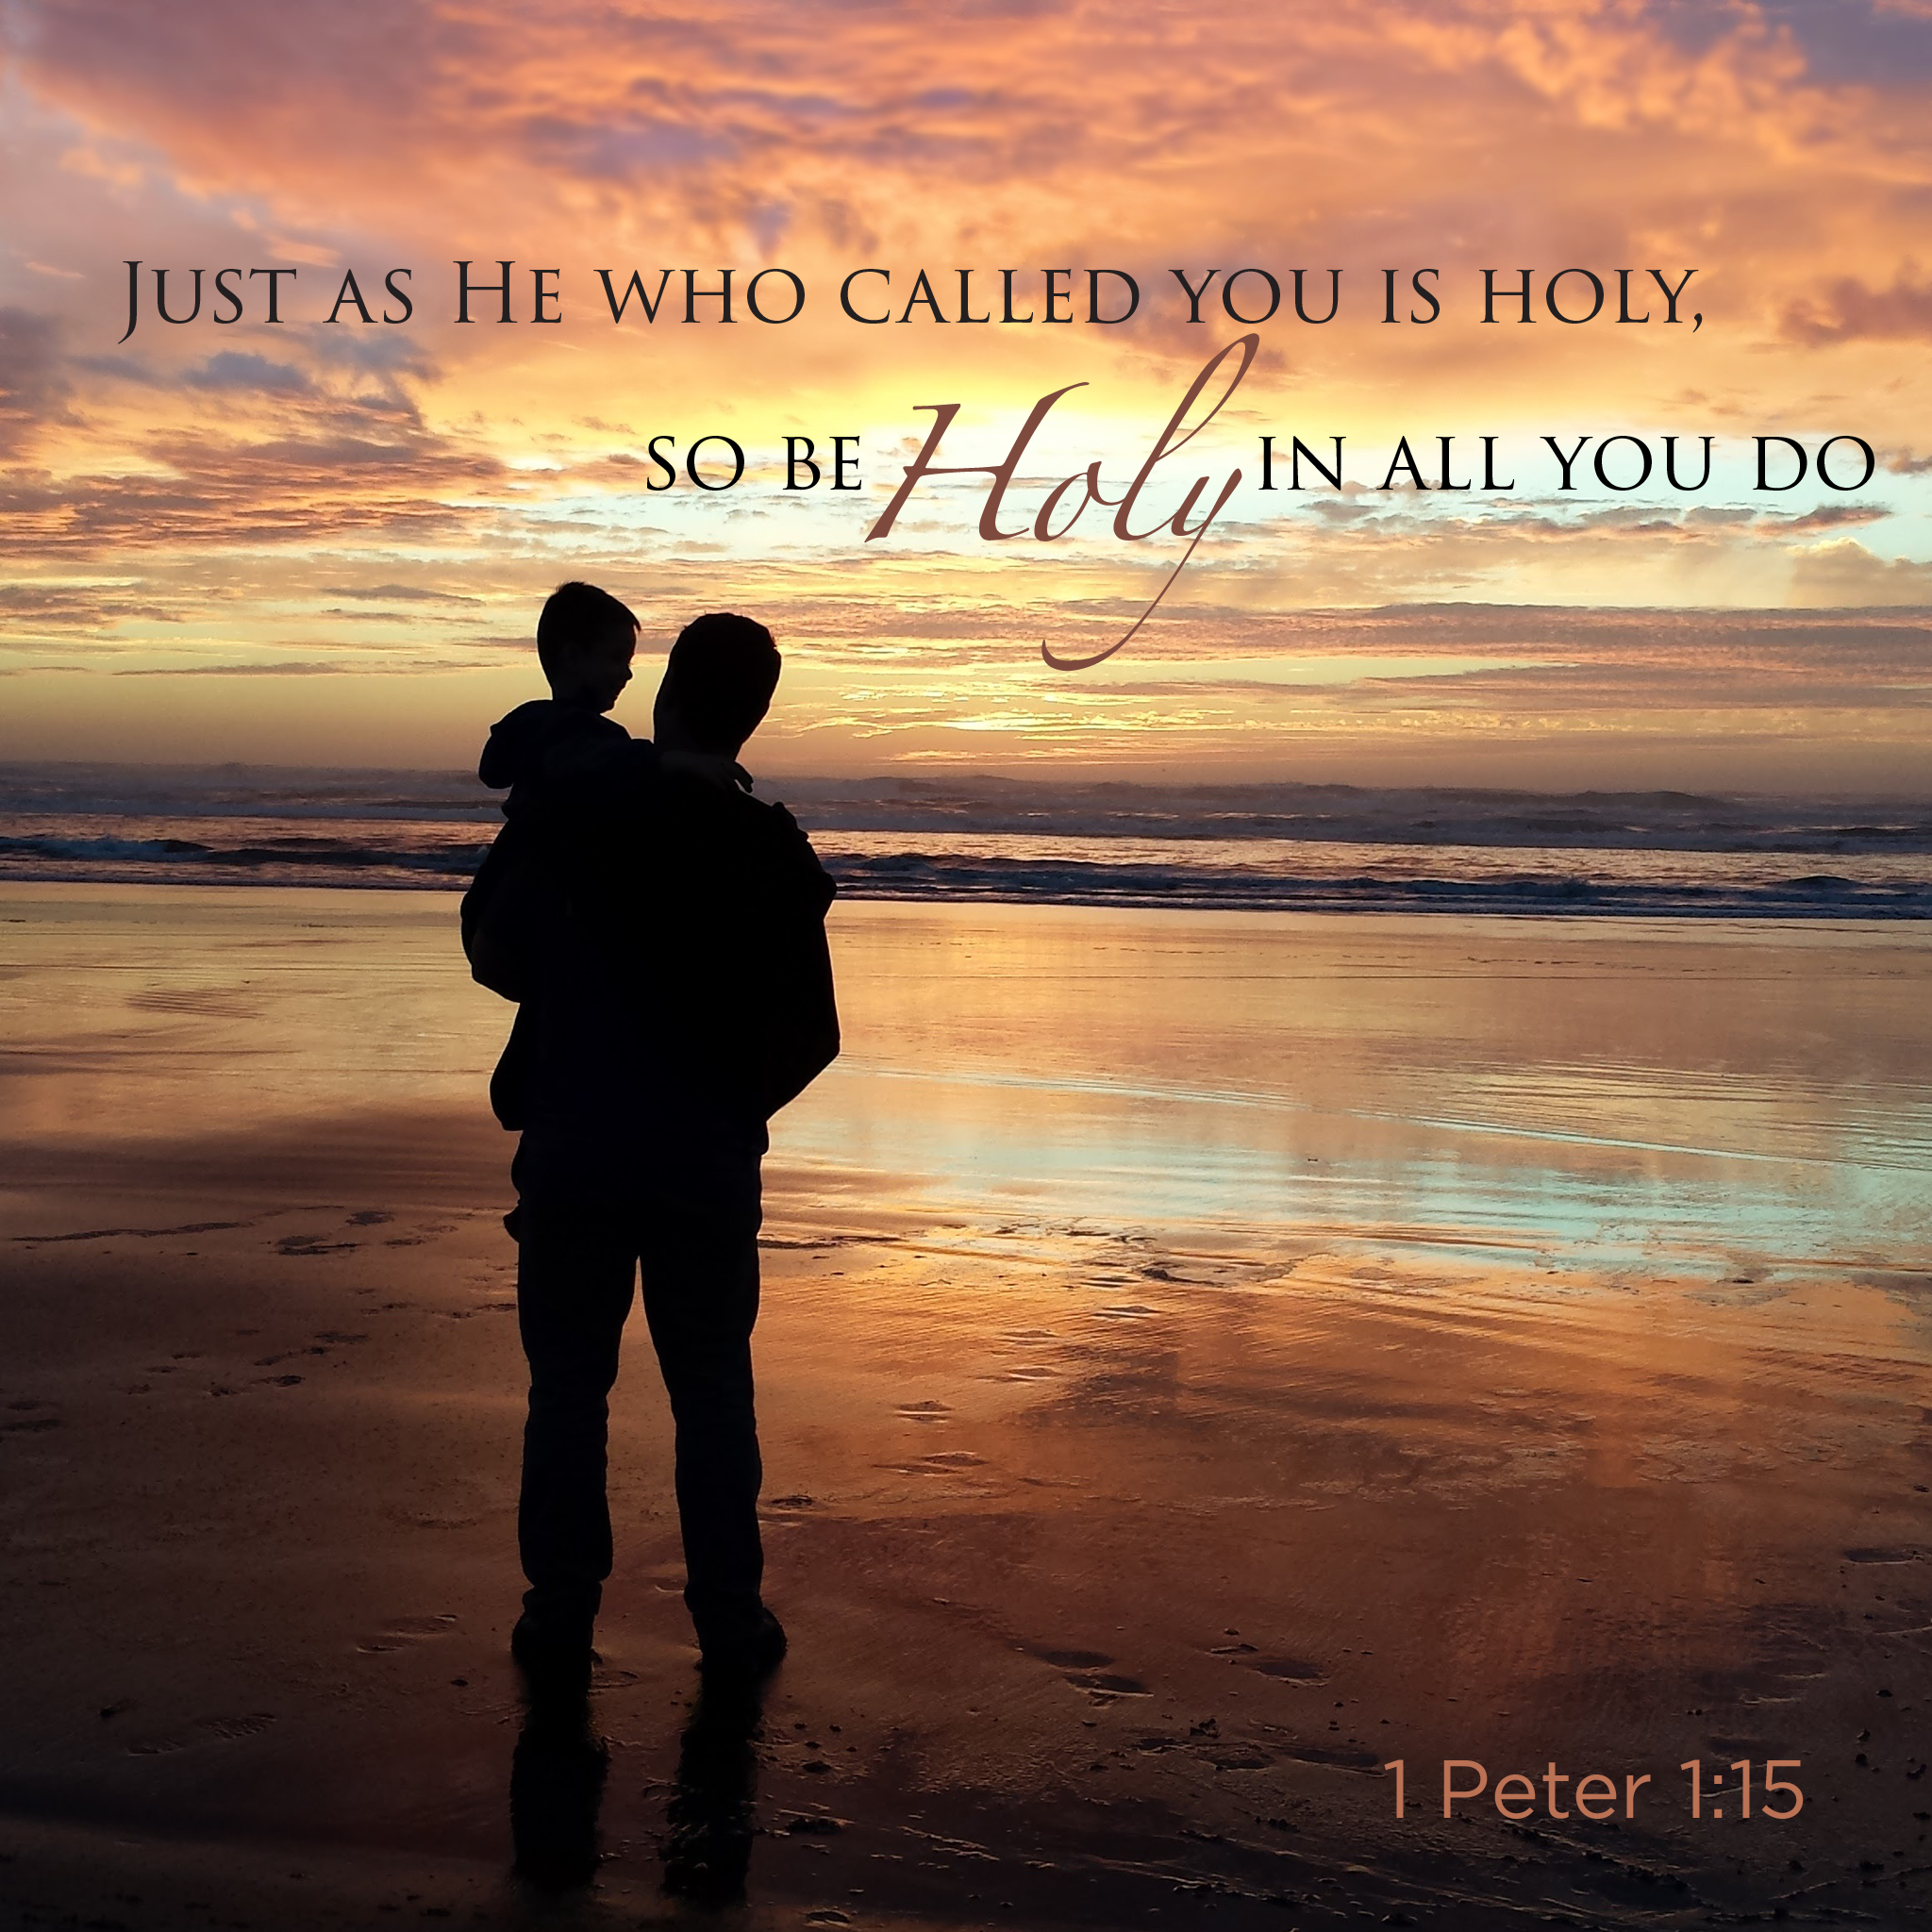 1 Peter 1:15 scripture picture